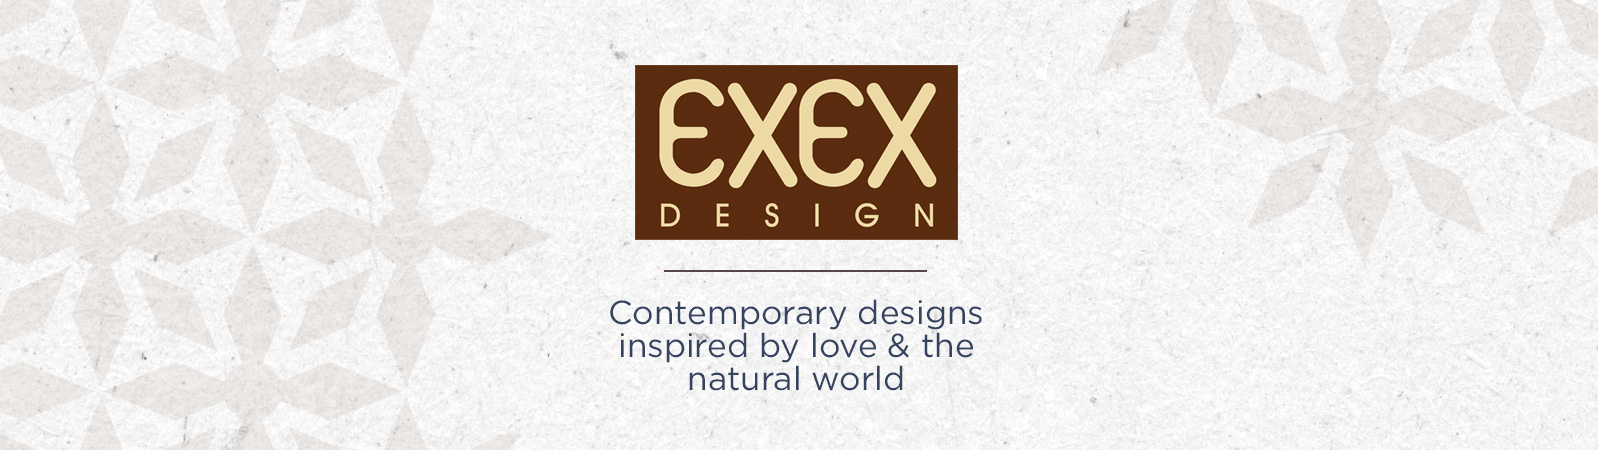 EXEX Design. Contemporary designs inspired by love & the natural world